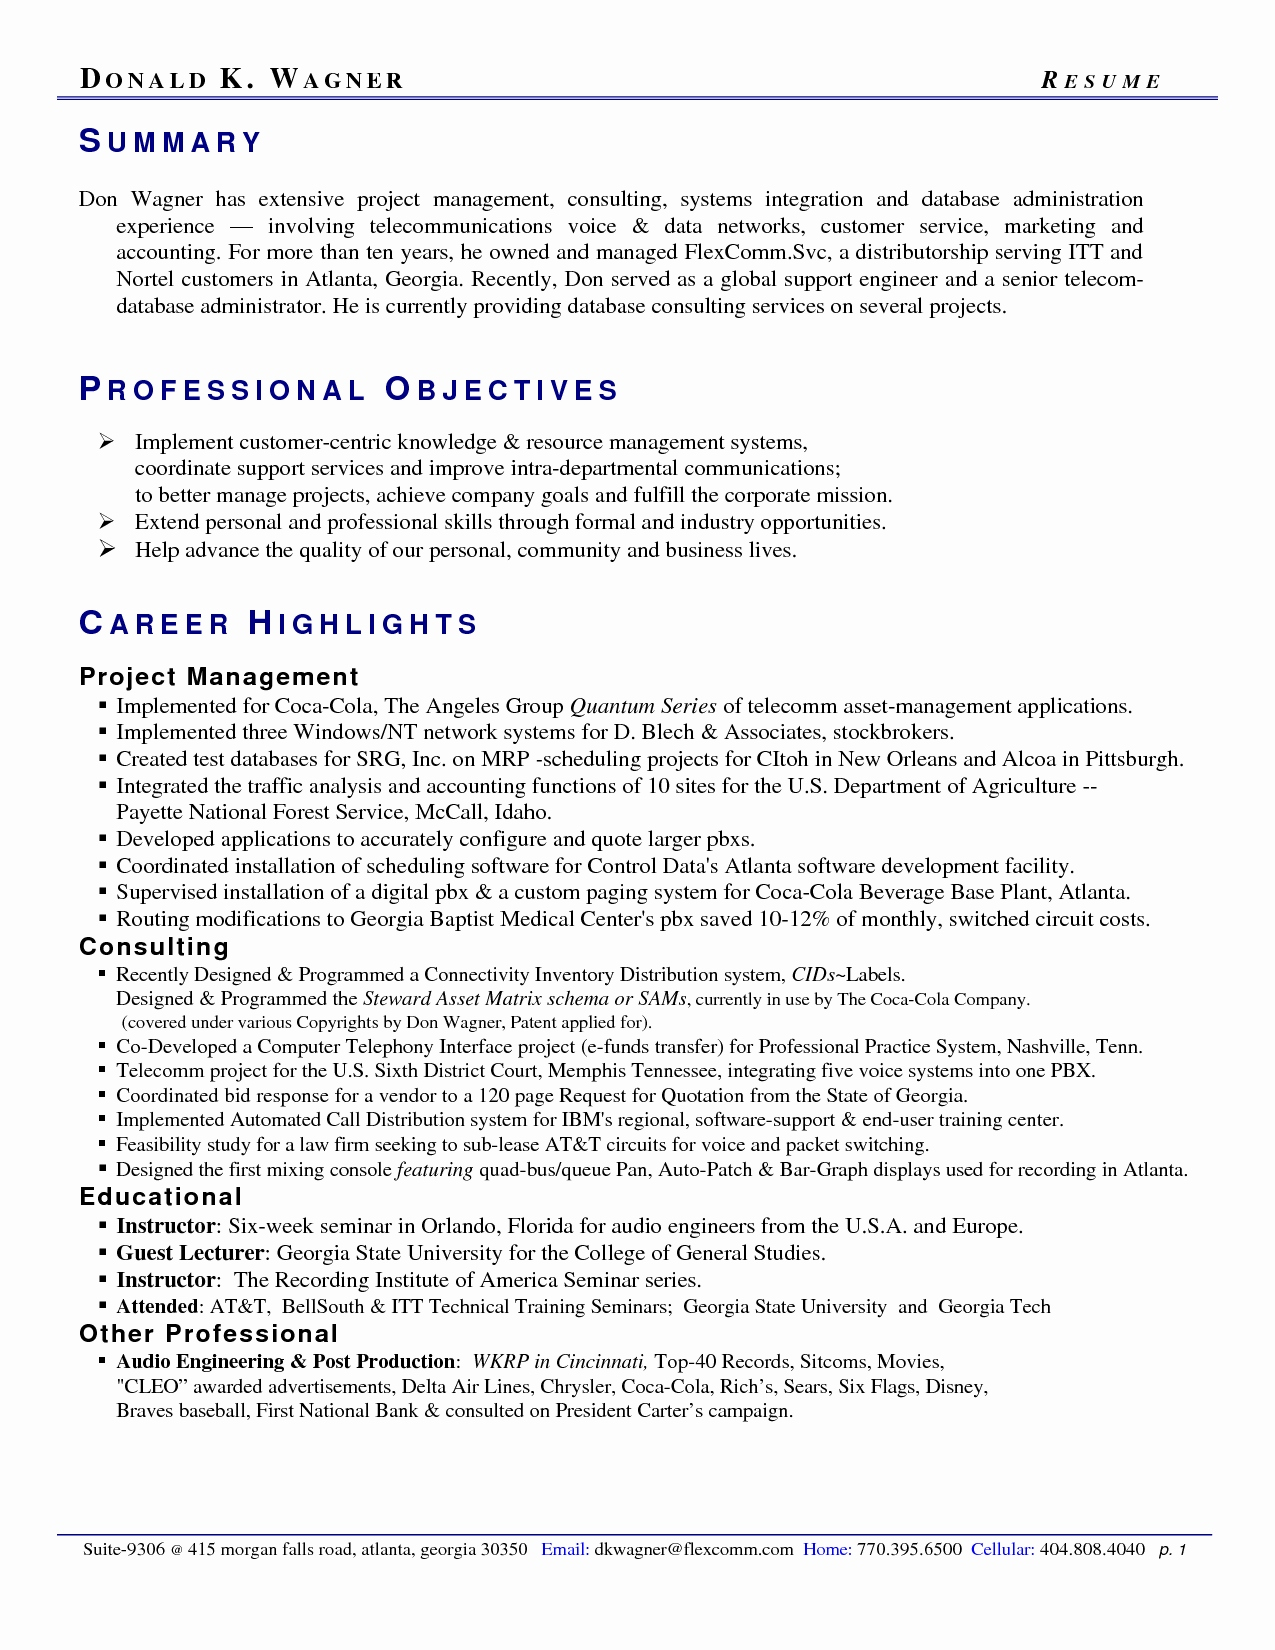 Gatech Resume Template - Georgia Tech Resume Template New Resume Professional Summary